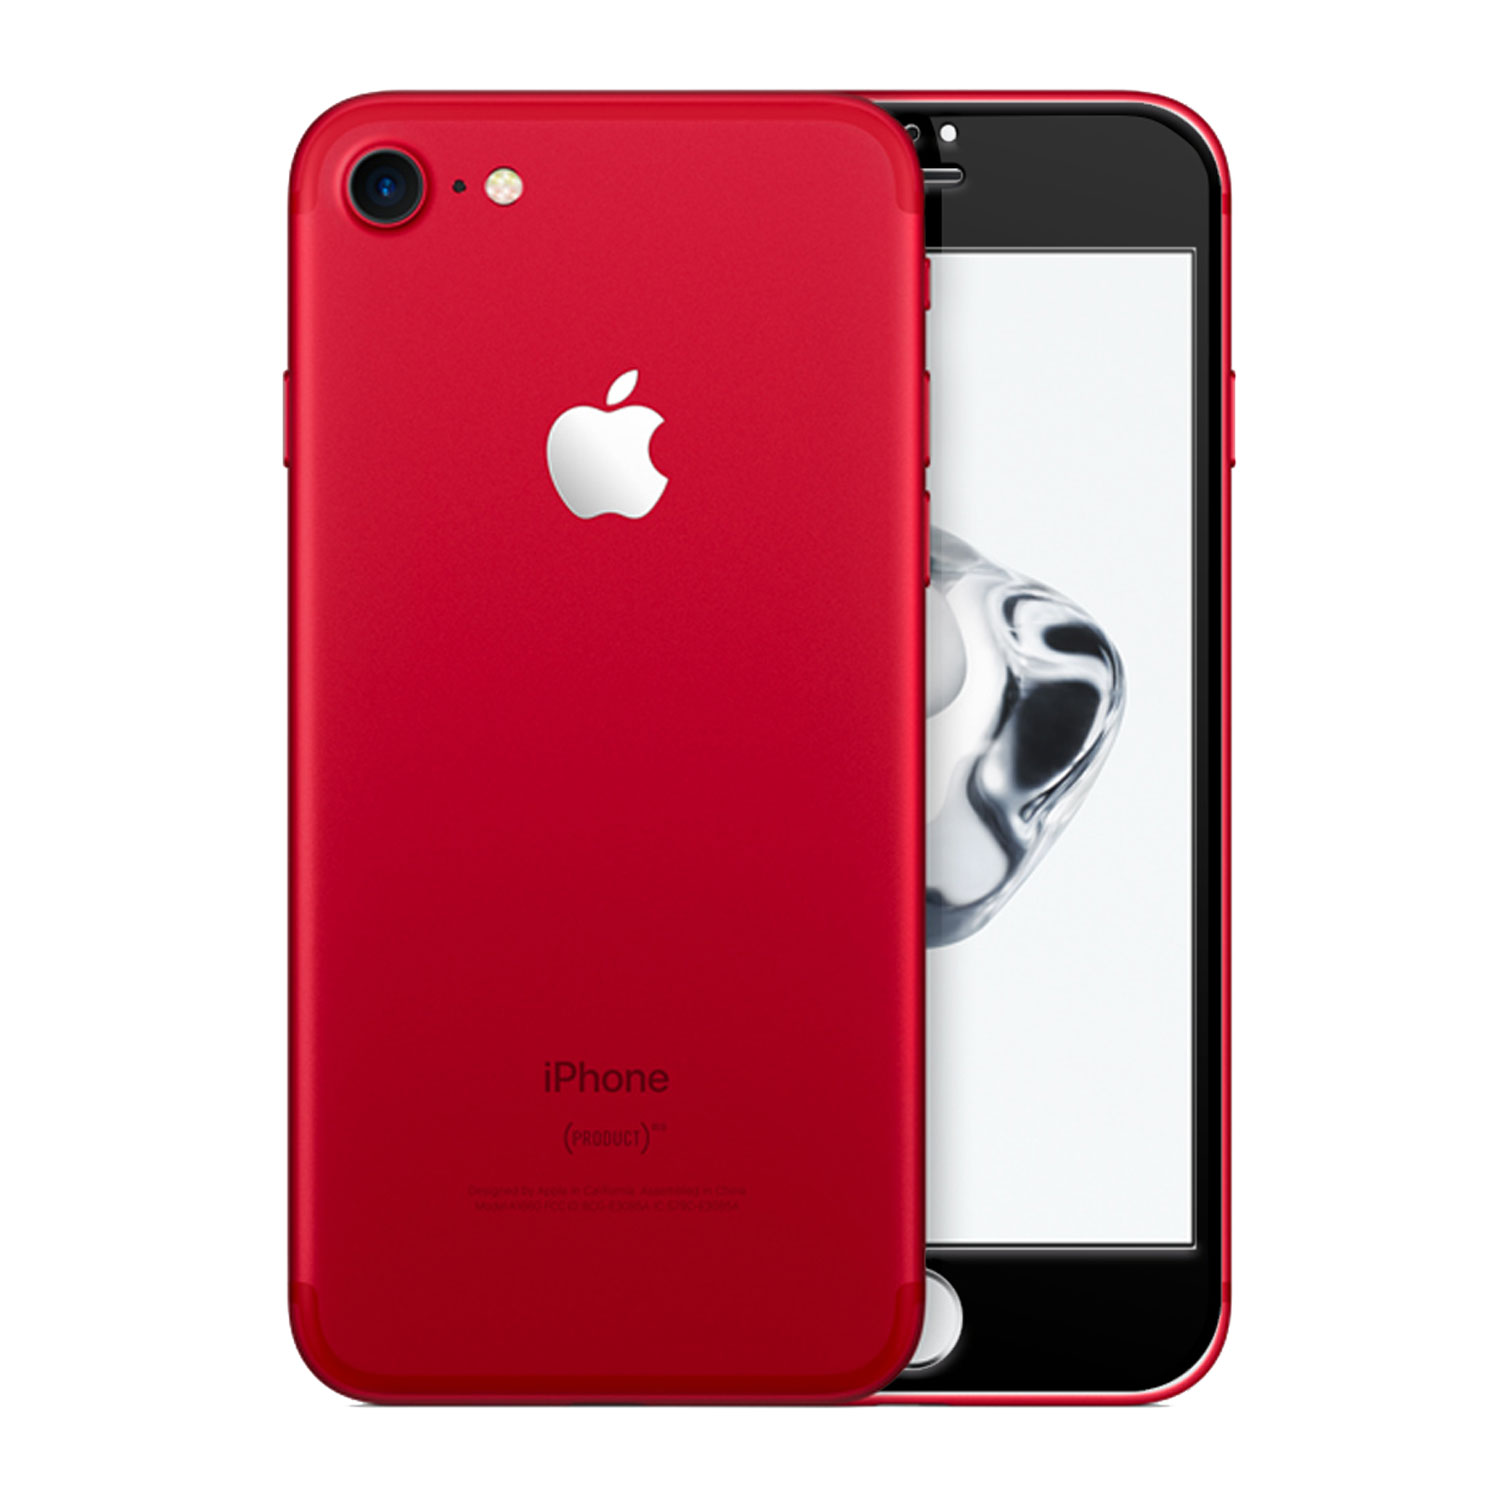 iPhone Red Product Apple Turn iPhone 7 Red For Charity